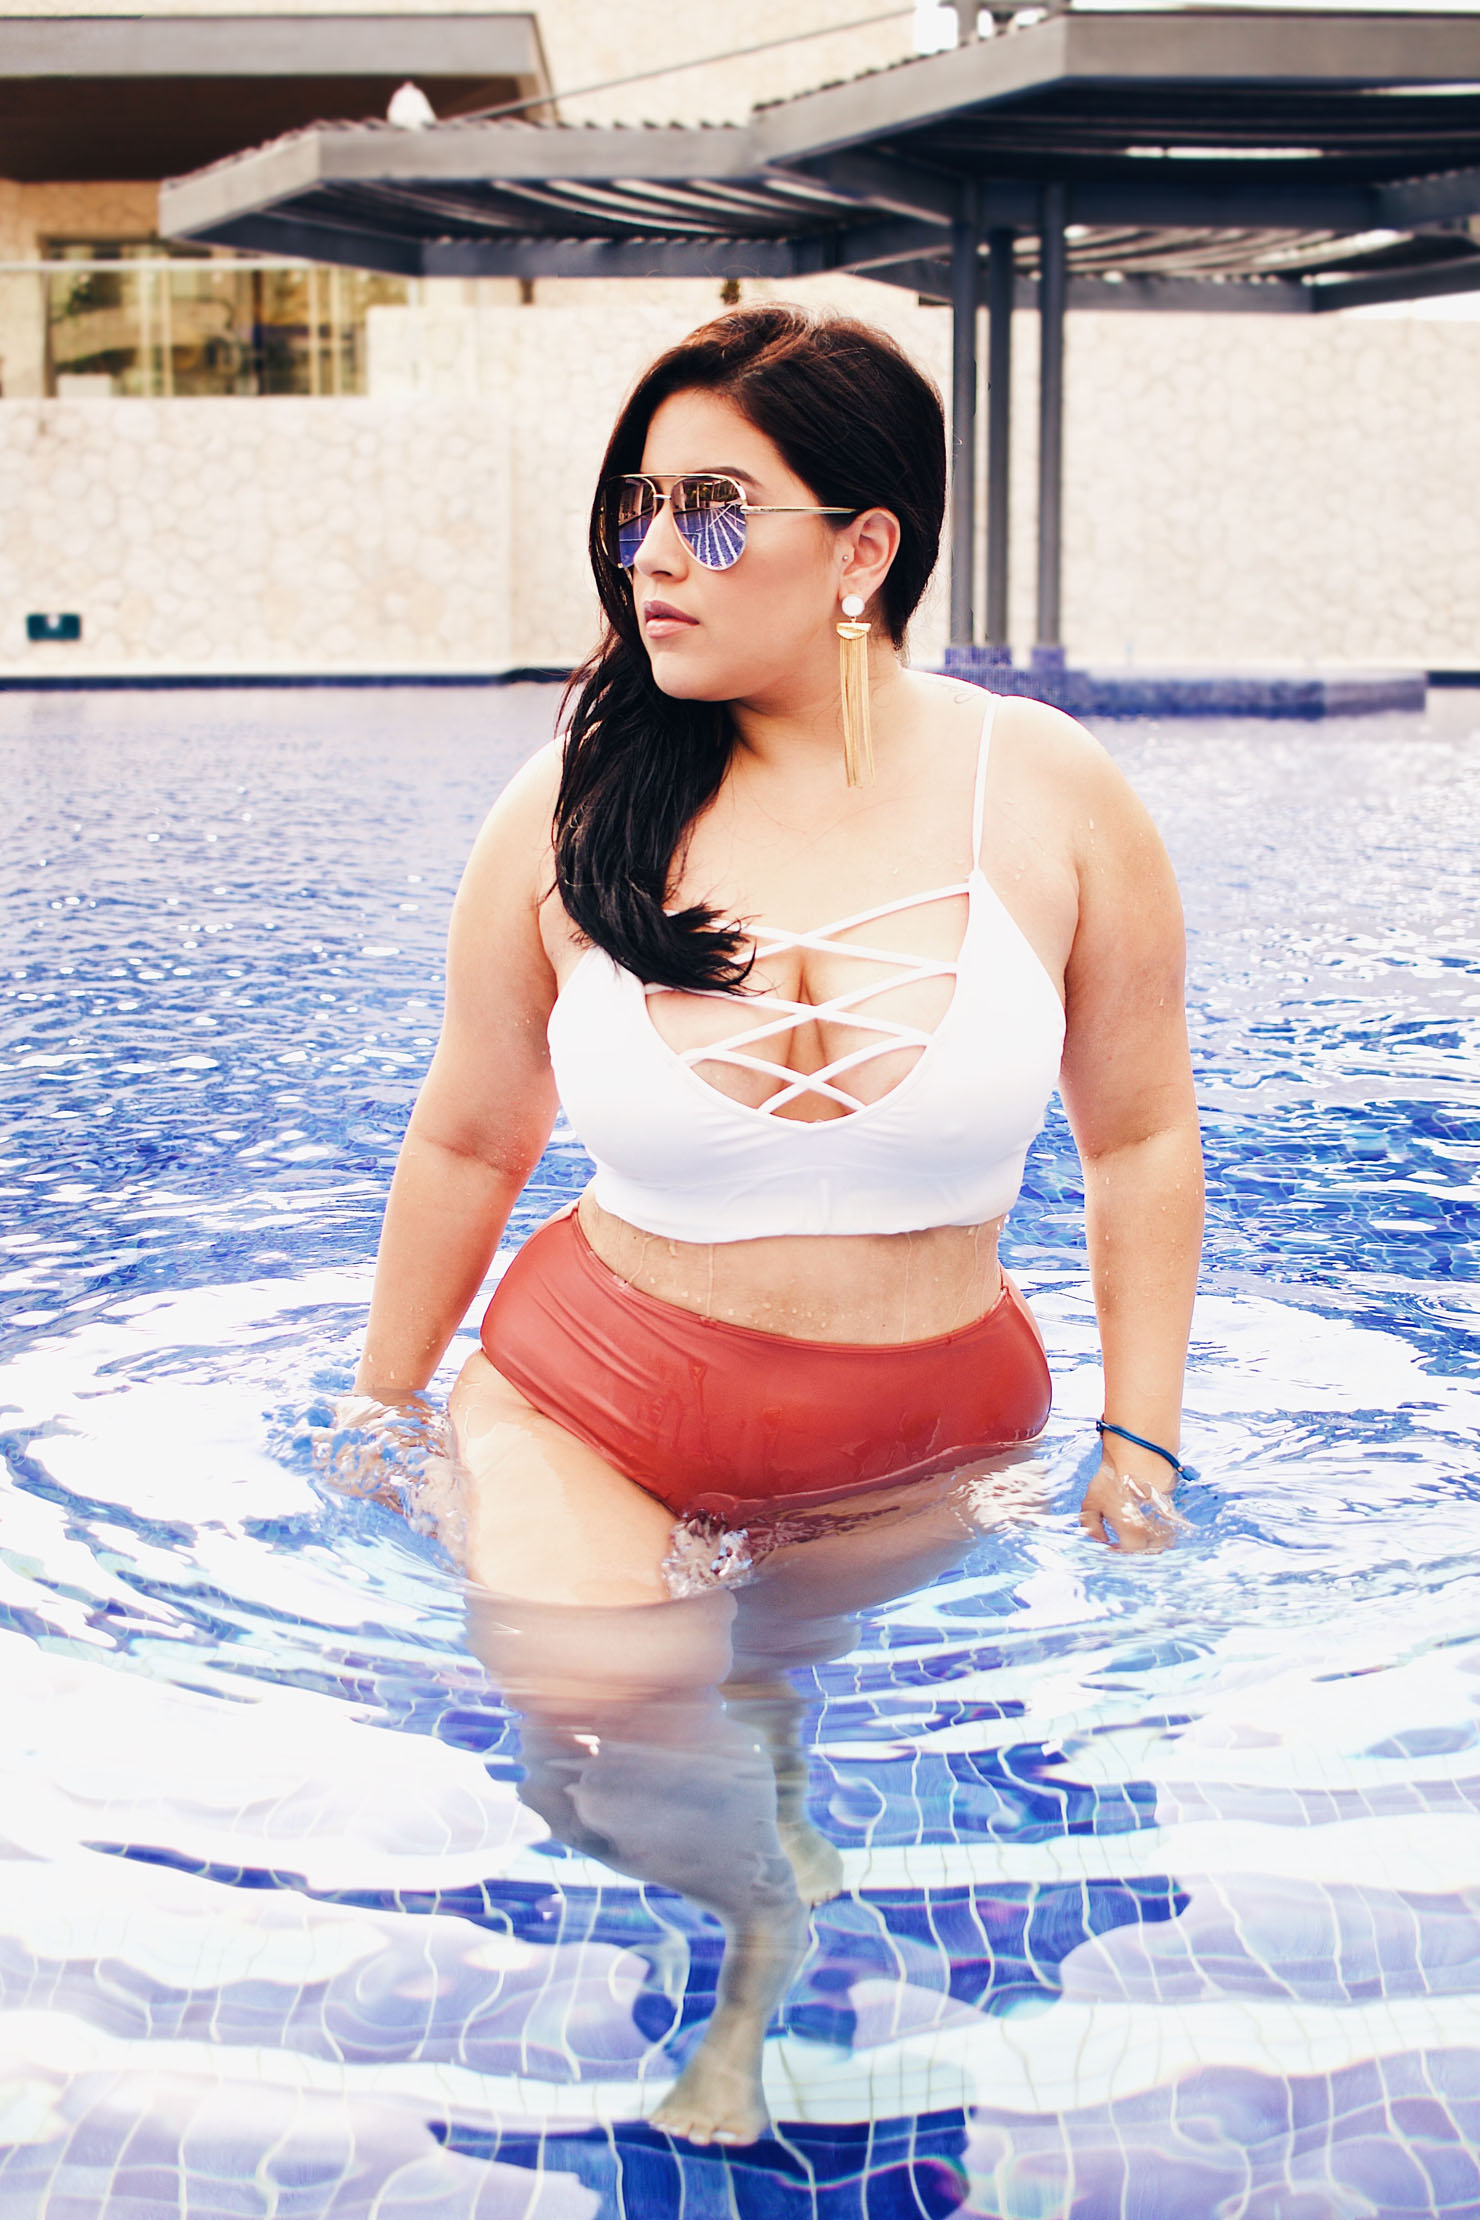 Consider, Latina in bikini by a pool agree